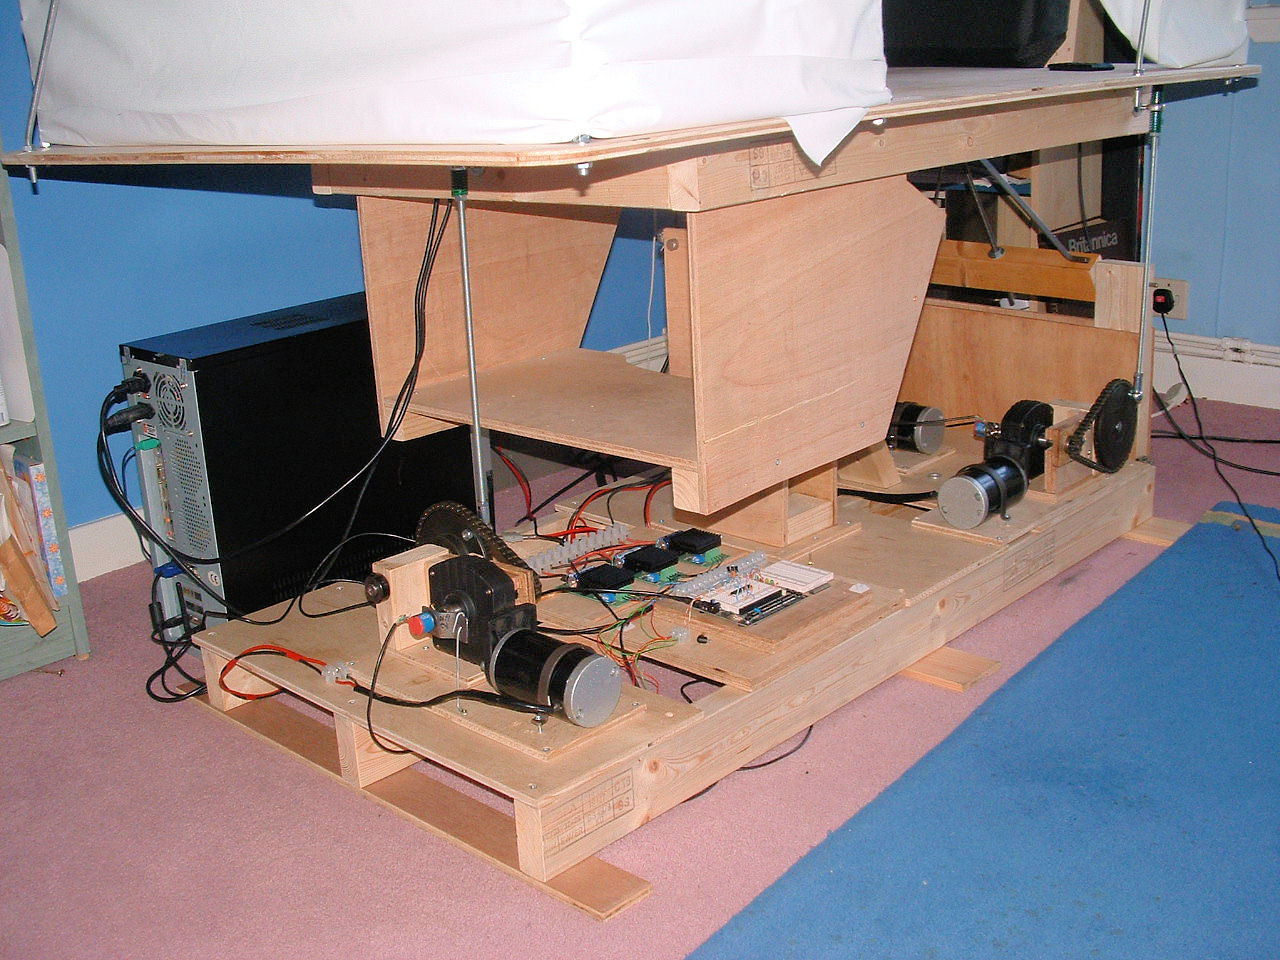 Diy motion simulator plans diy projects ideas for House plan simulator